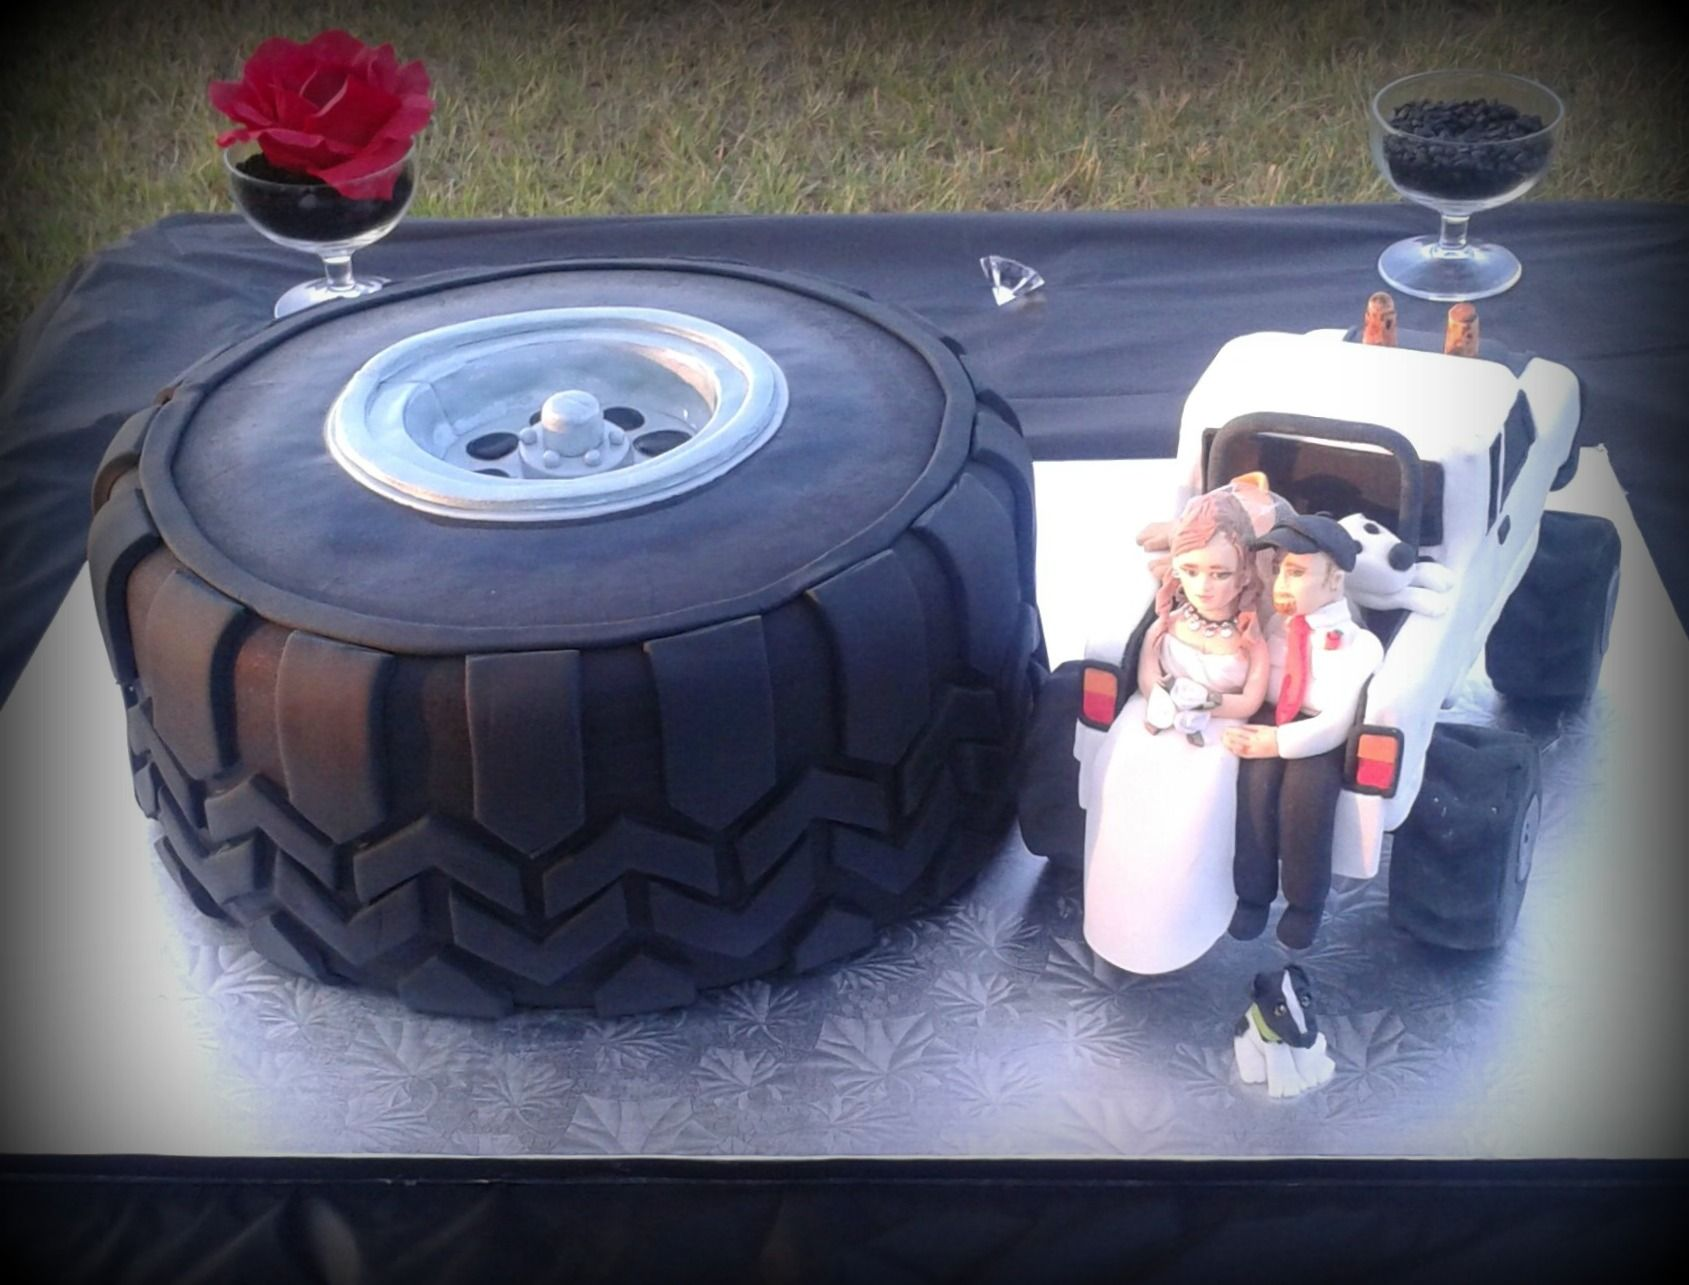 mudding tire wedding rings mud tire wedding ring Mudding tire wedding rings Mud Tire Double 12 Chocolate Cake With Cookies Cream